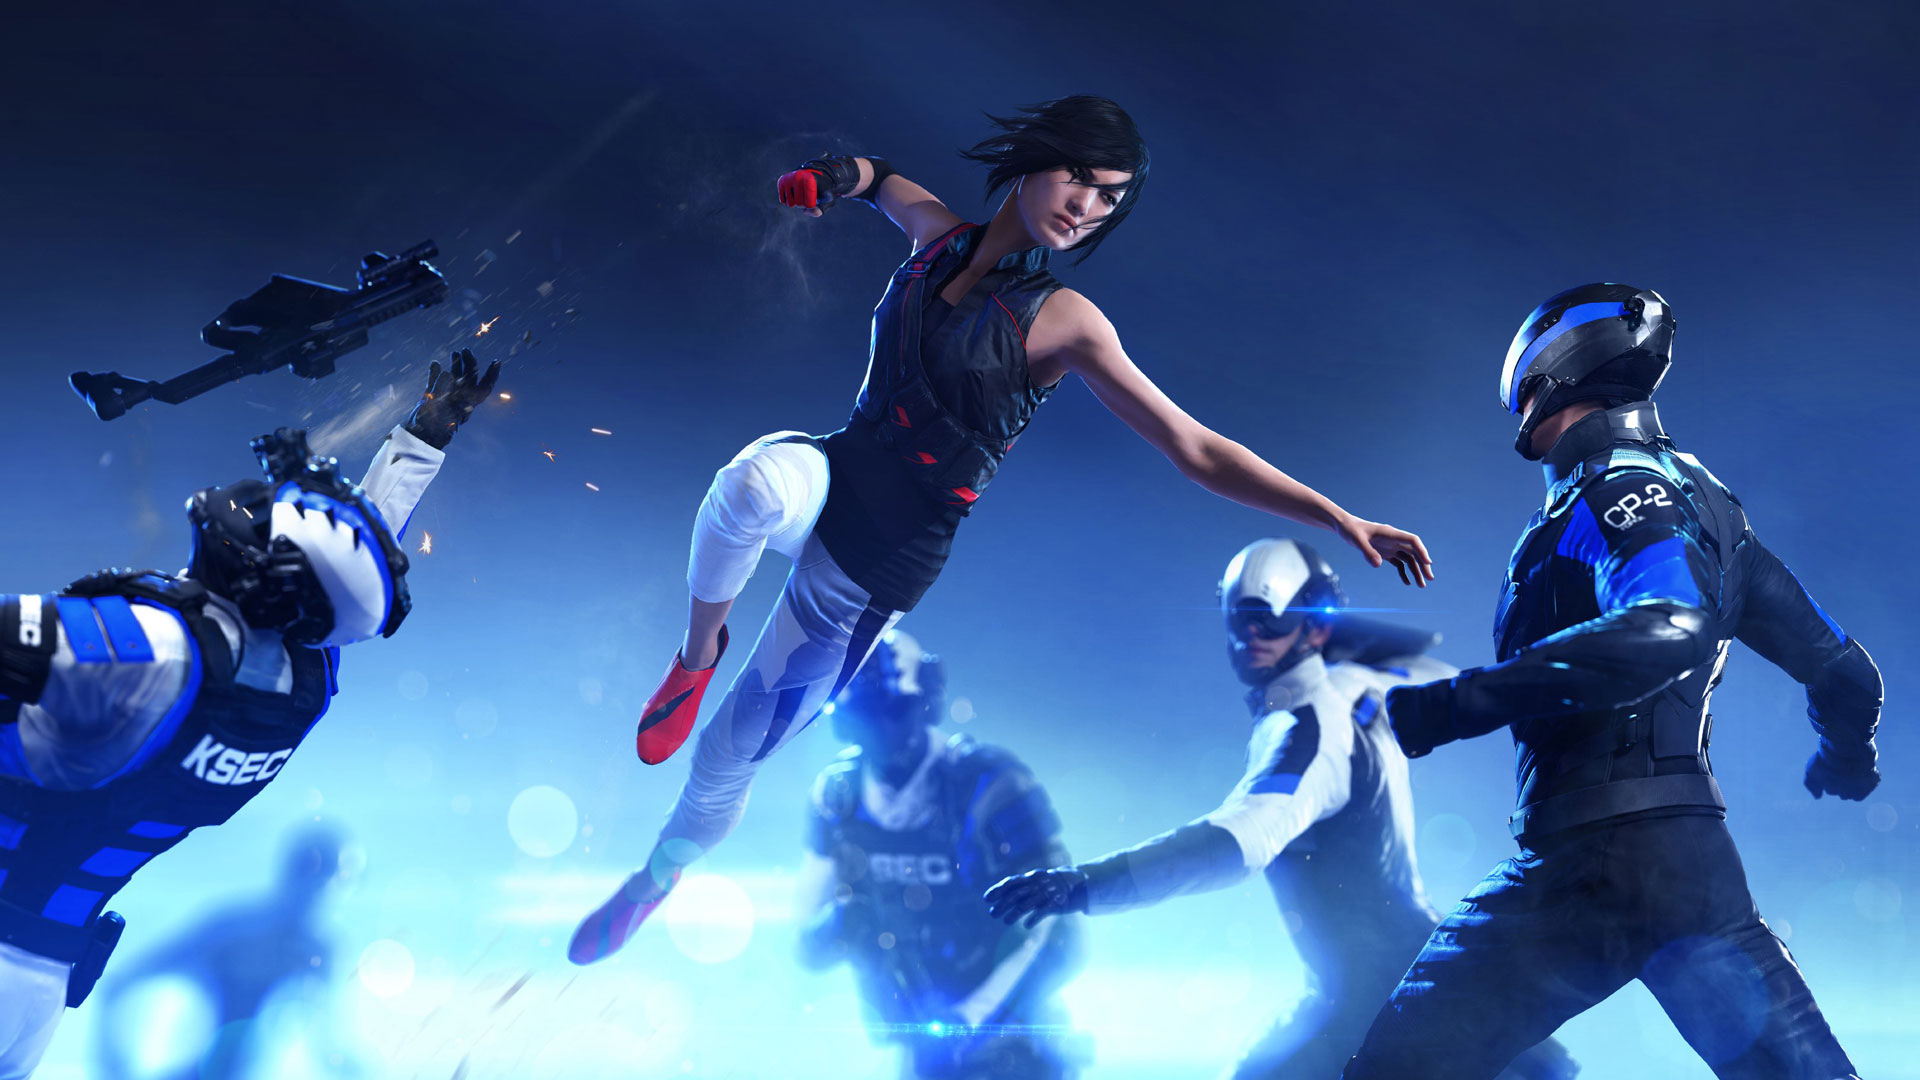 Review: Mirror's Edge Catalyst innovates in all the wrong places